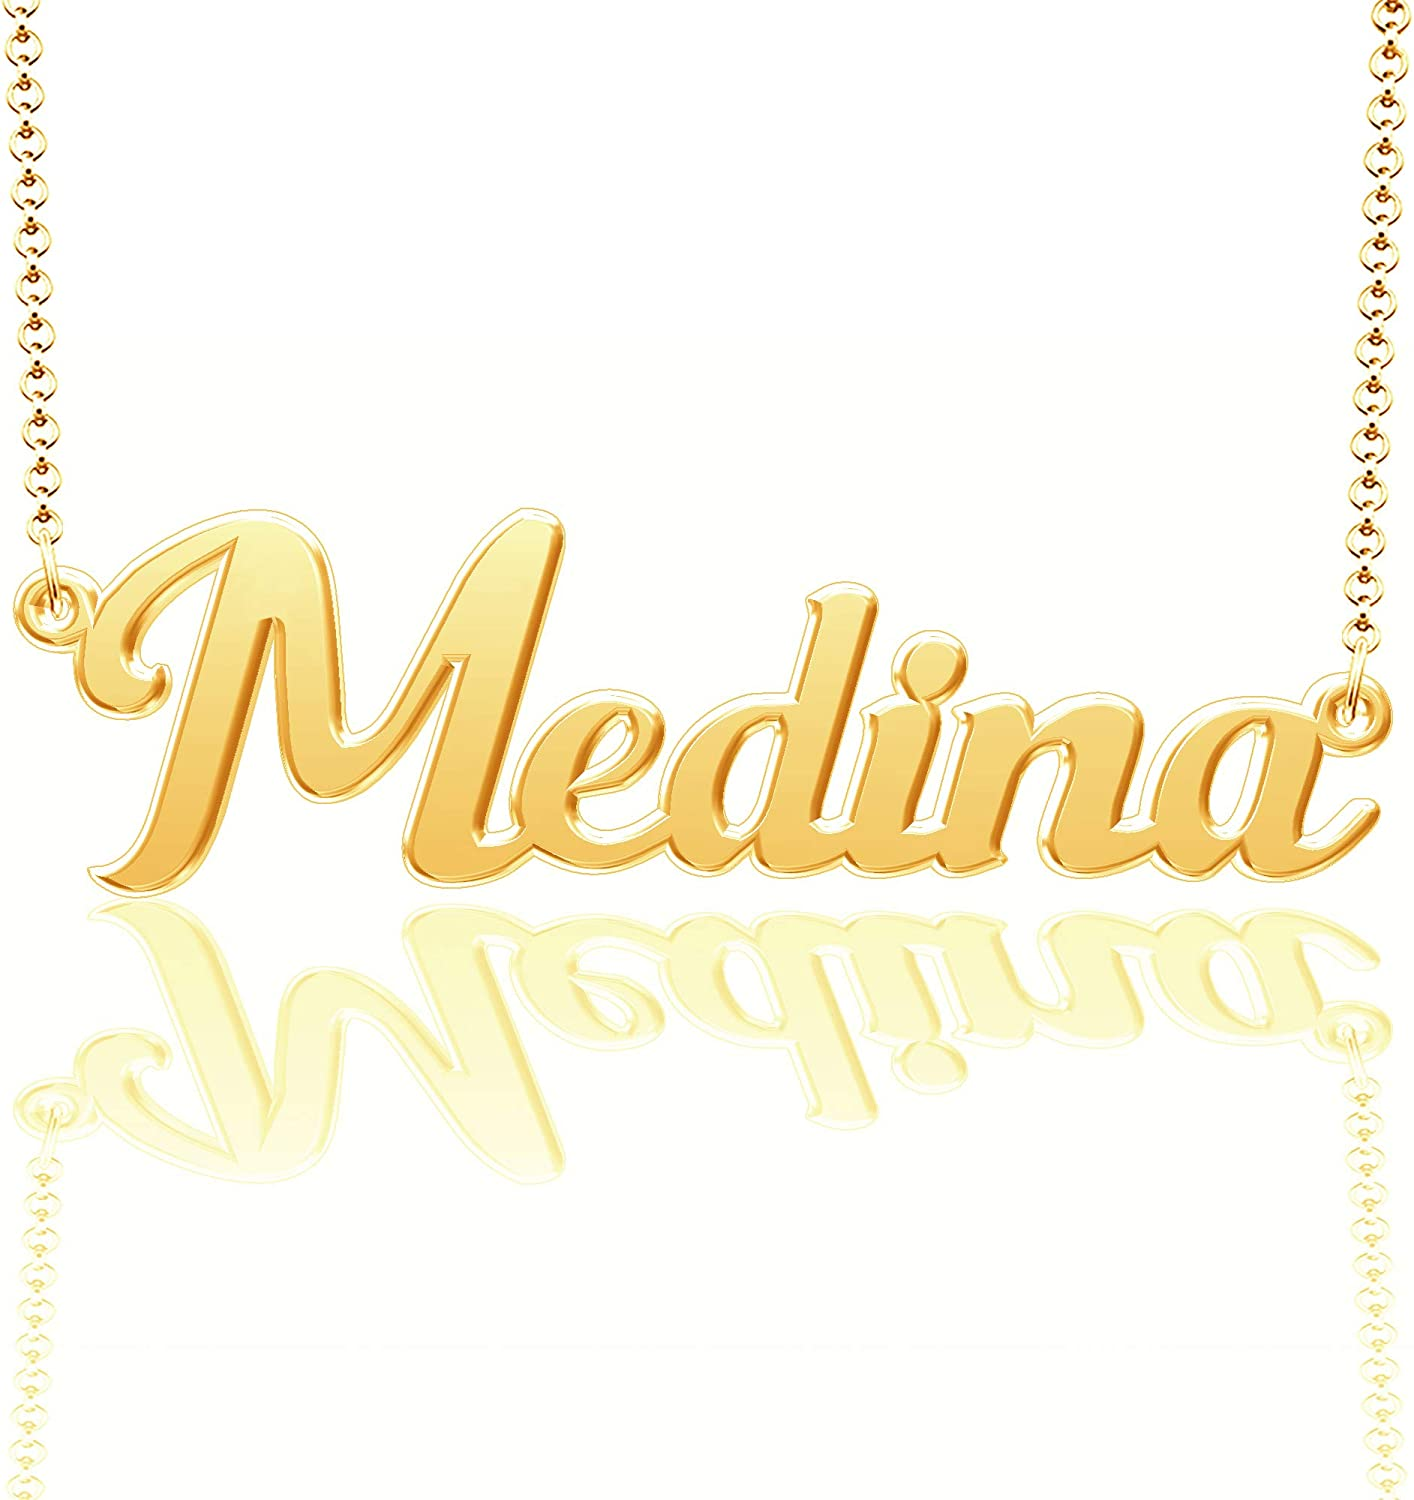 CLY Jewelry Personalized Last Name Necklace Custom Sterling Silver Medina Plate Customized Gift for Family